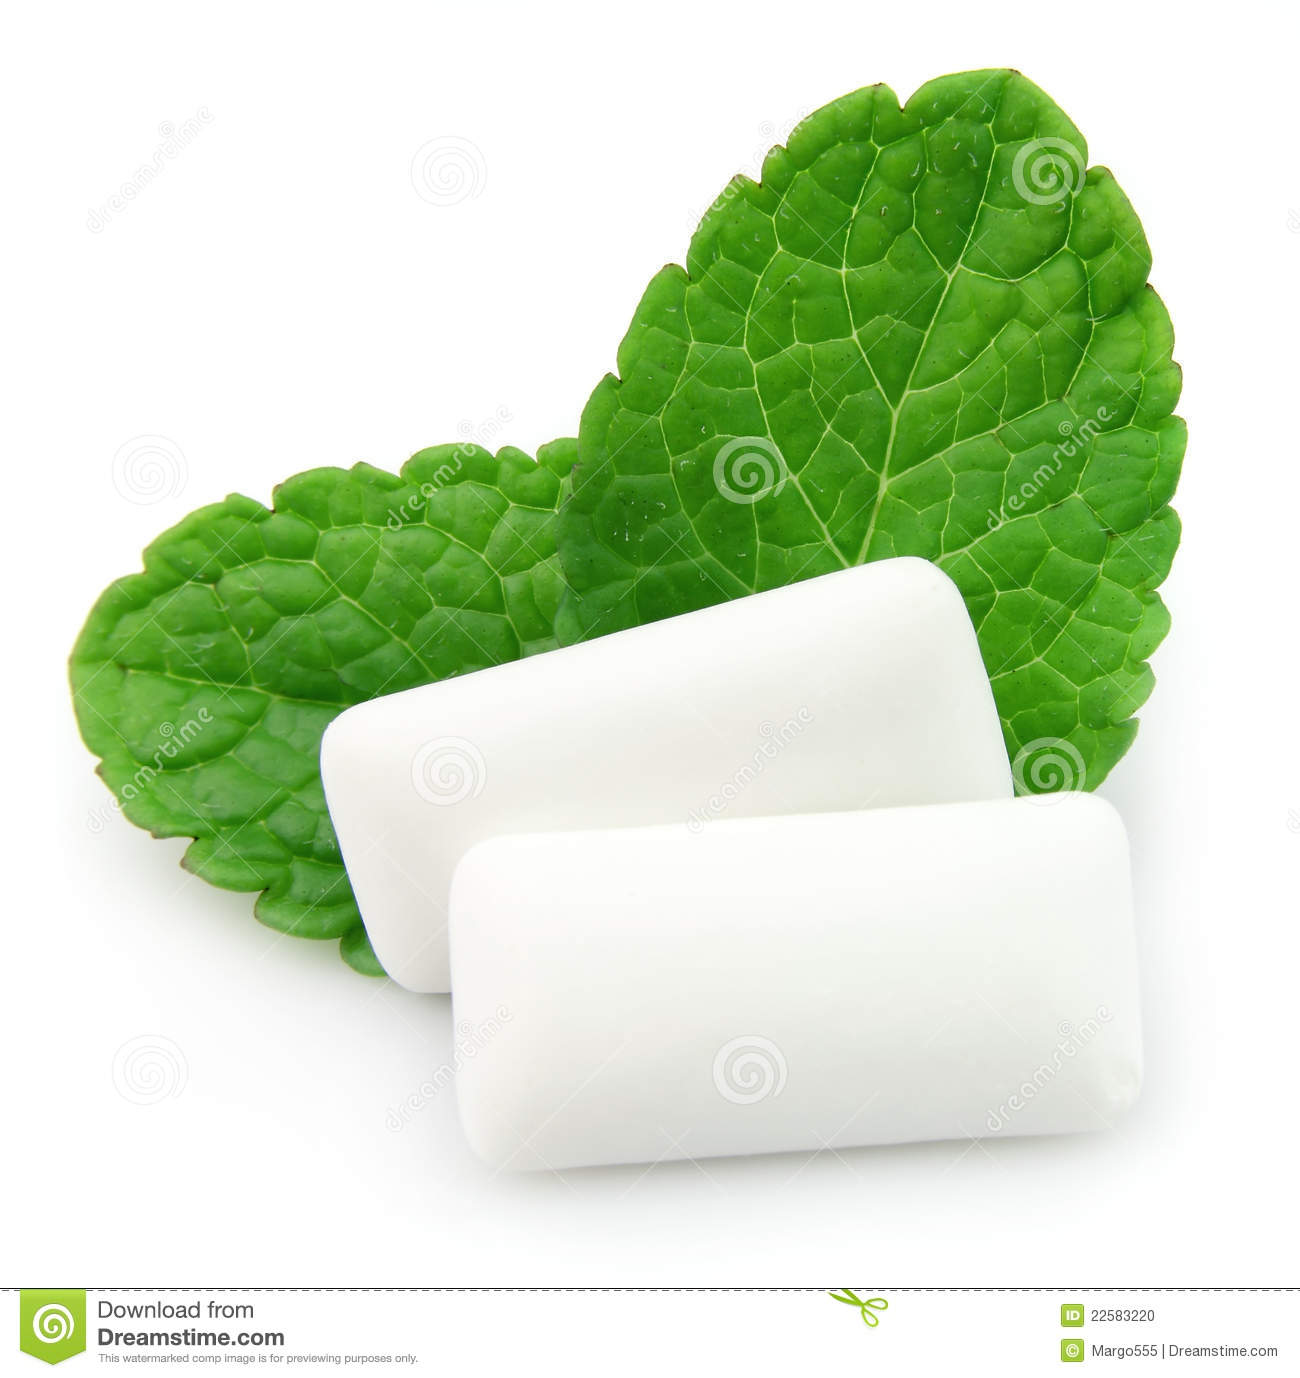 Chewing Gum Menthol Stock Photo Image Of Macro White